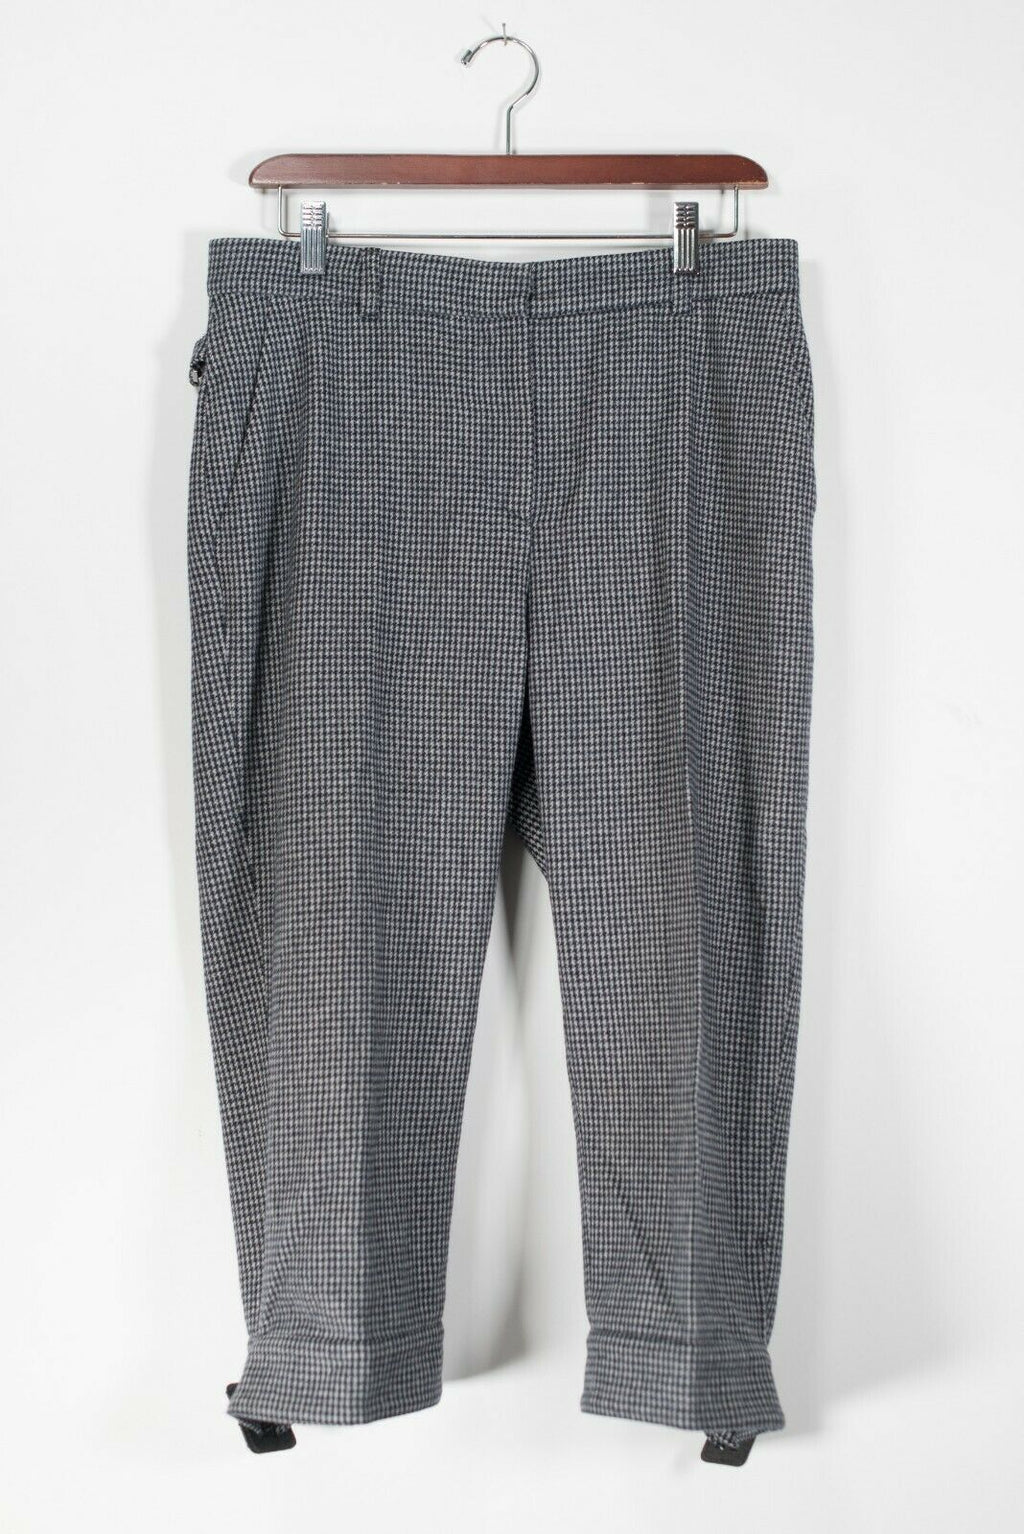 MaxMara Women's Size 10 Medium Gray Trousers Houndstooth Wool Crop Capri Pants